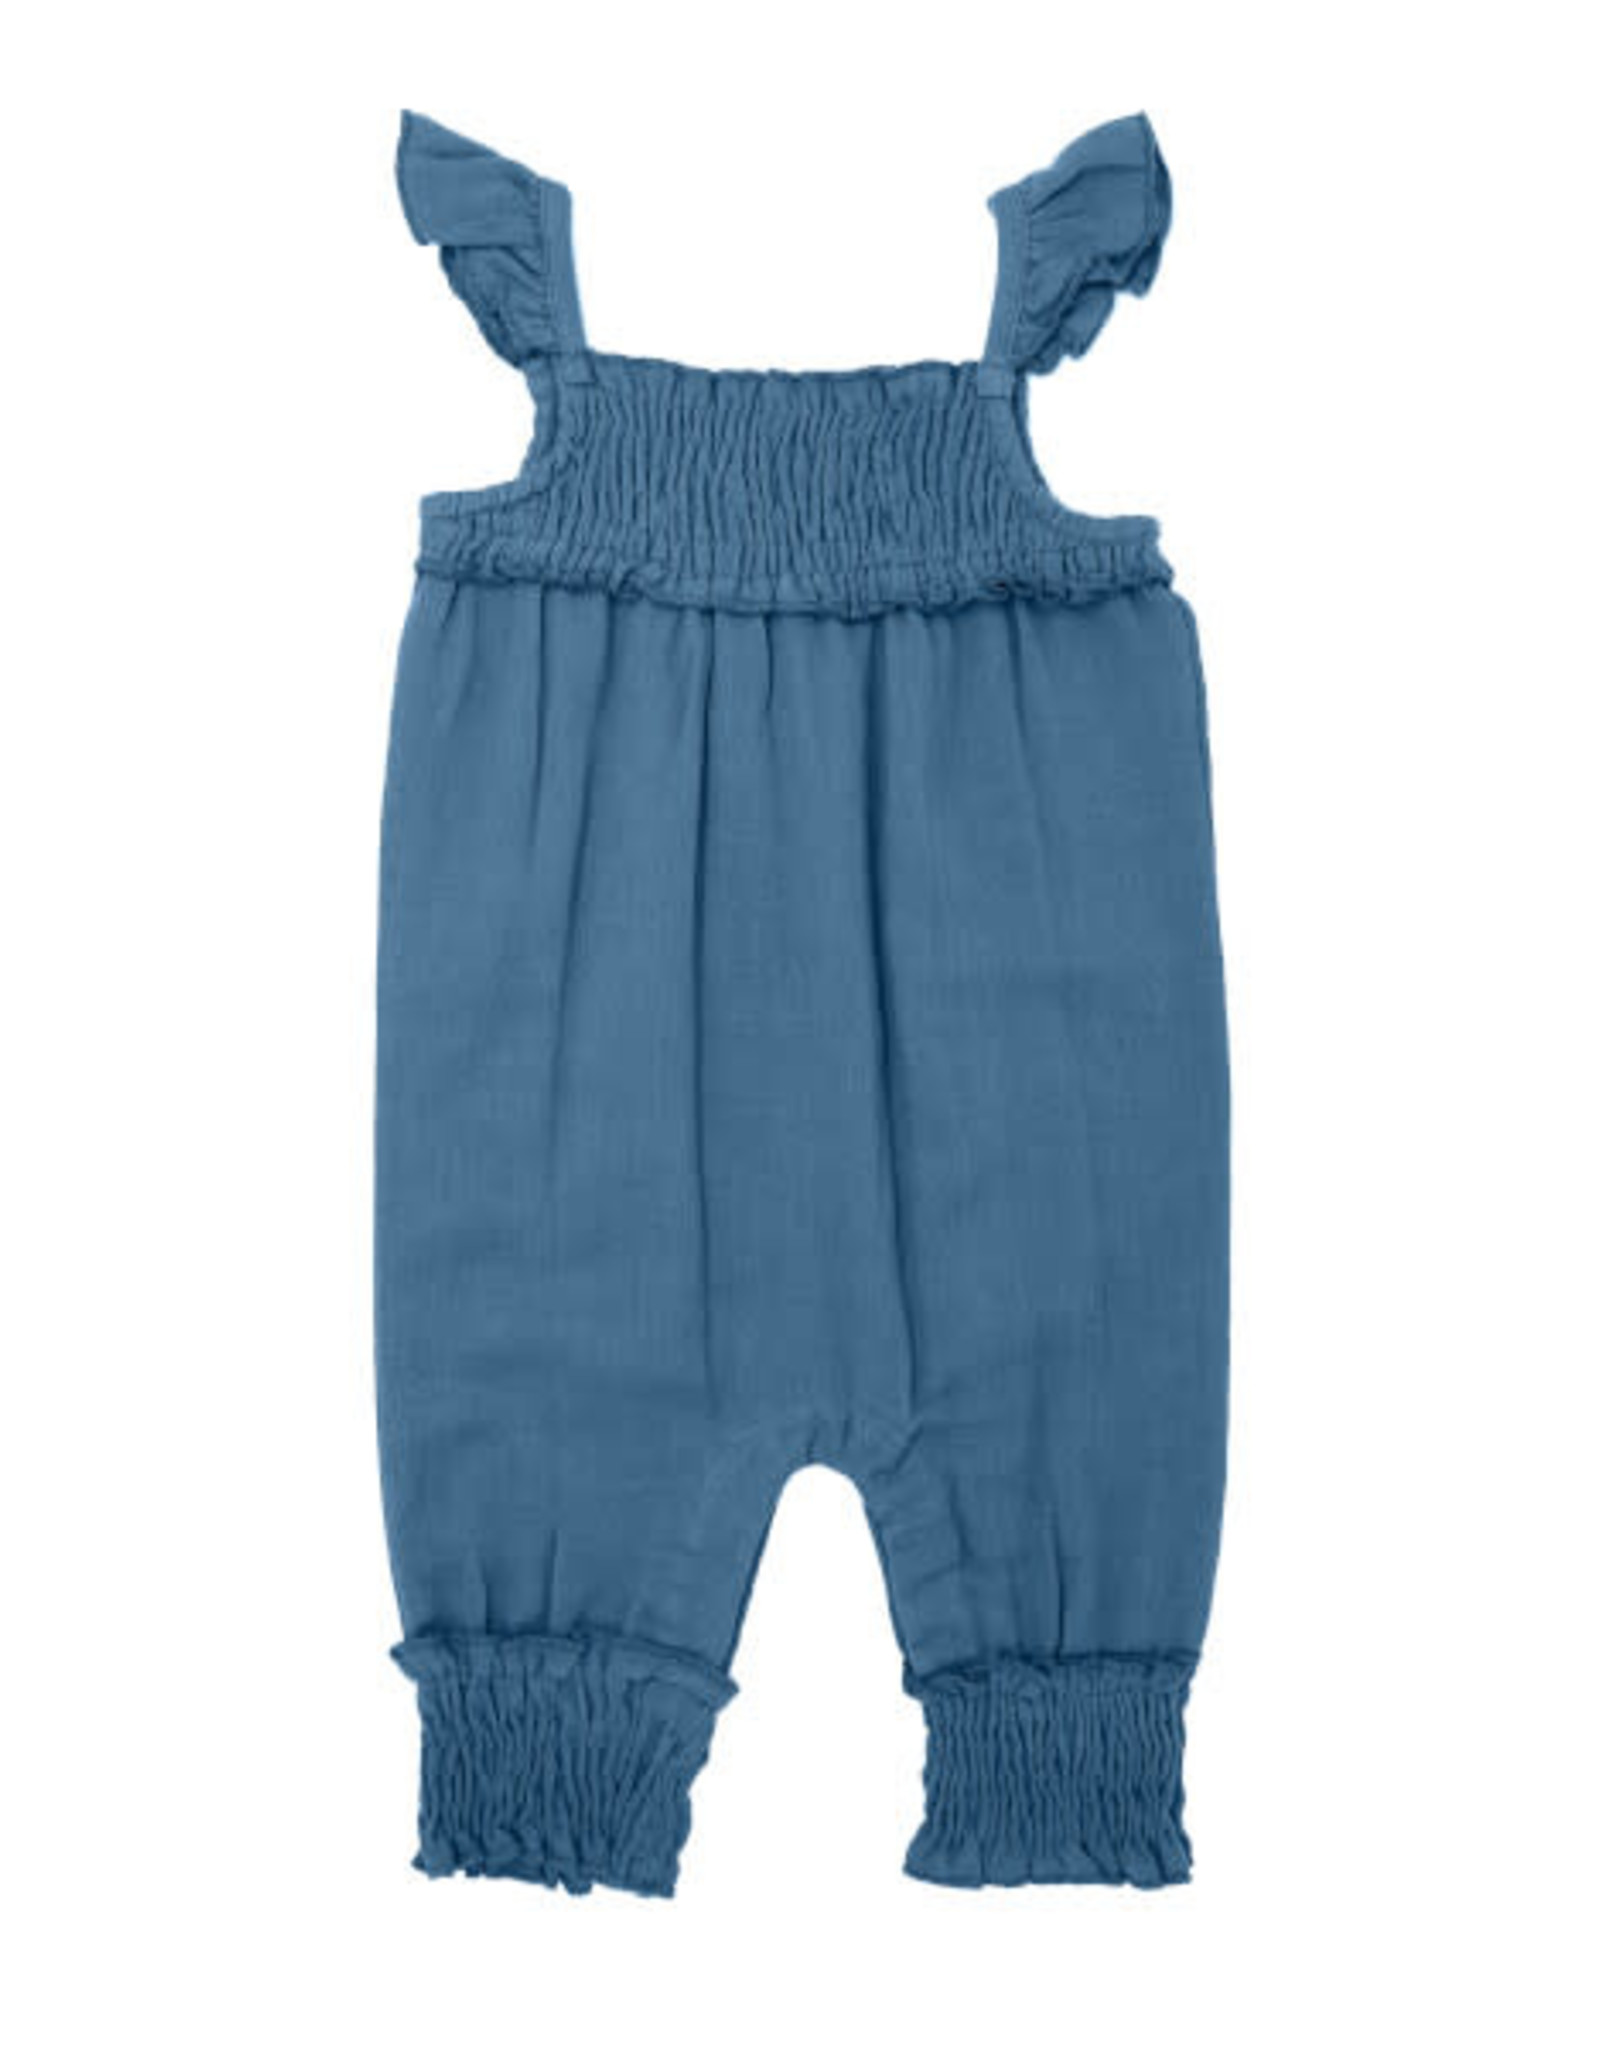 L'oved Baby Kids' Muslin Sleeveless Romper Pacific